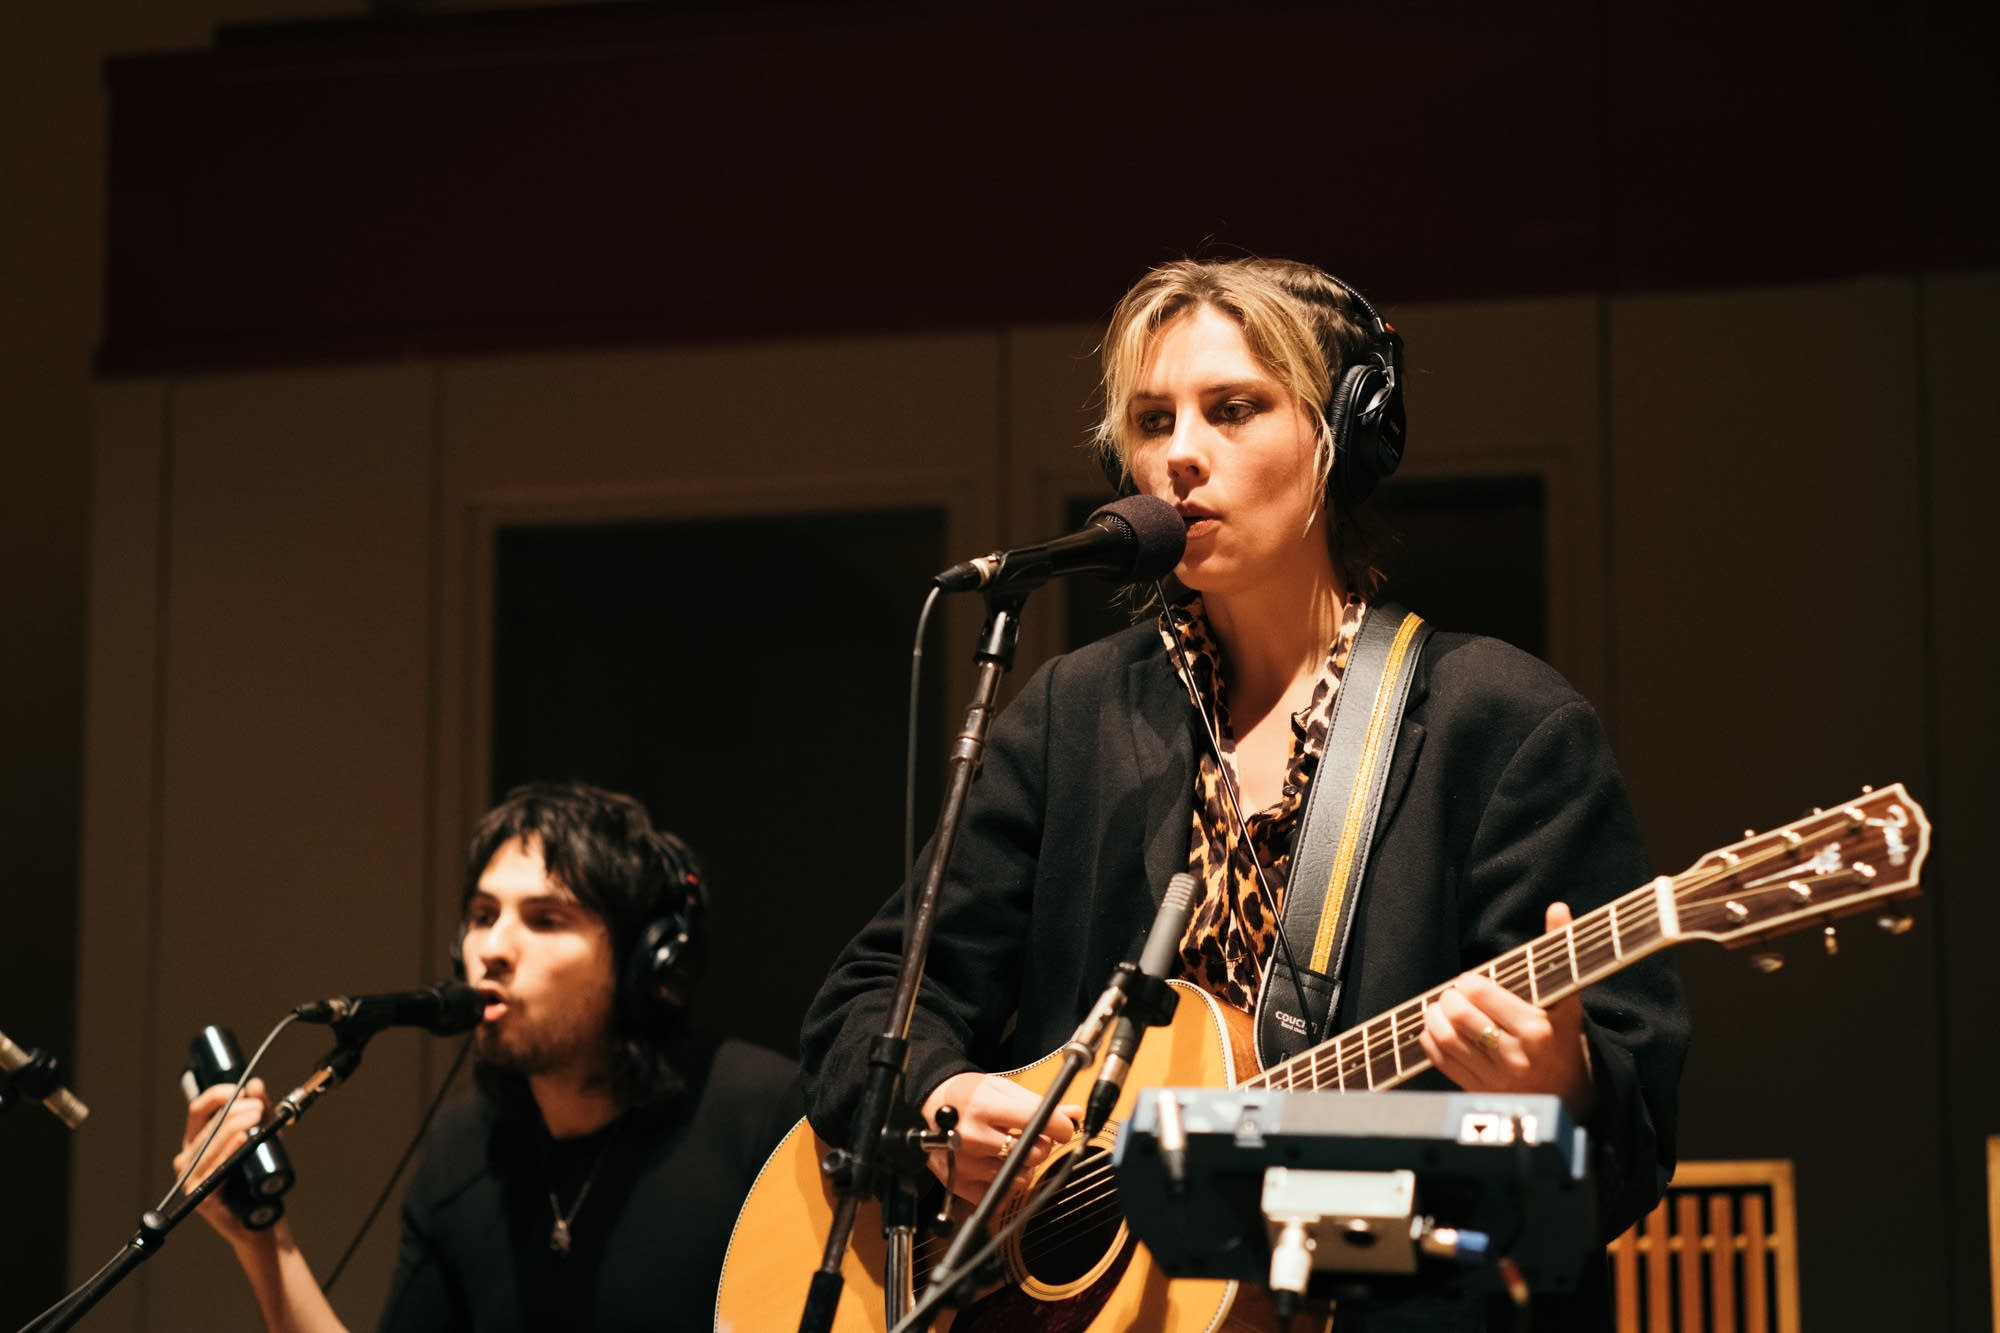 Wolf Alice perform in The Current studio